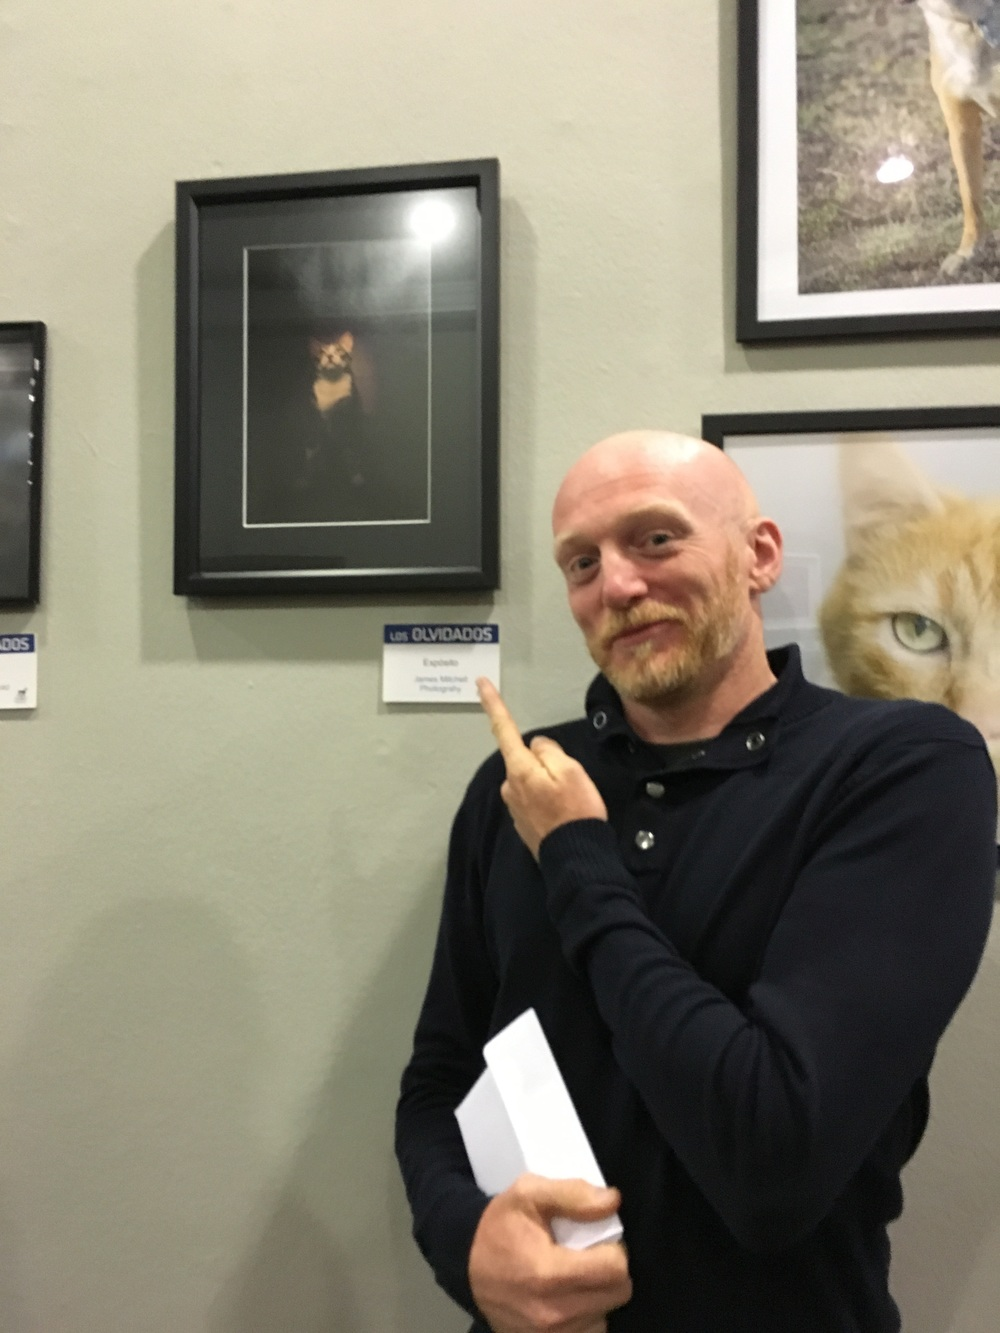 At the exhibition with my portrait of 'Expósito'